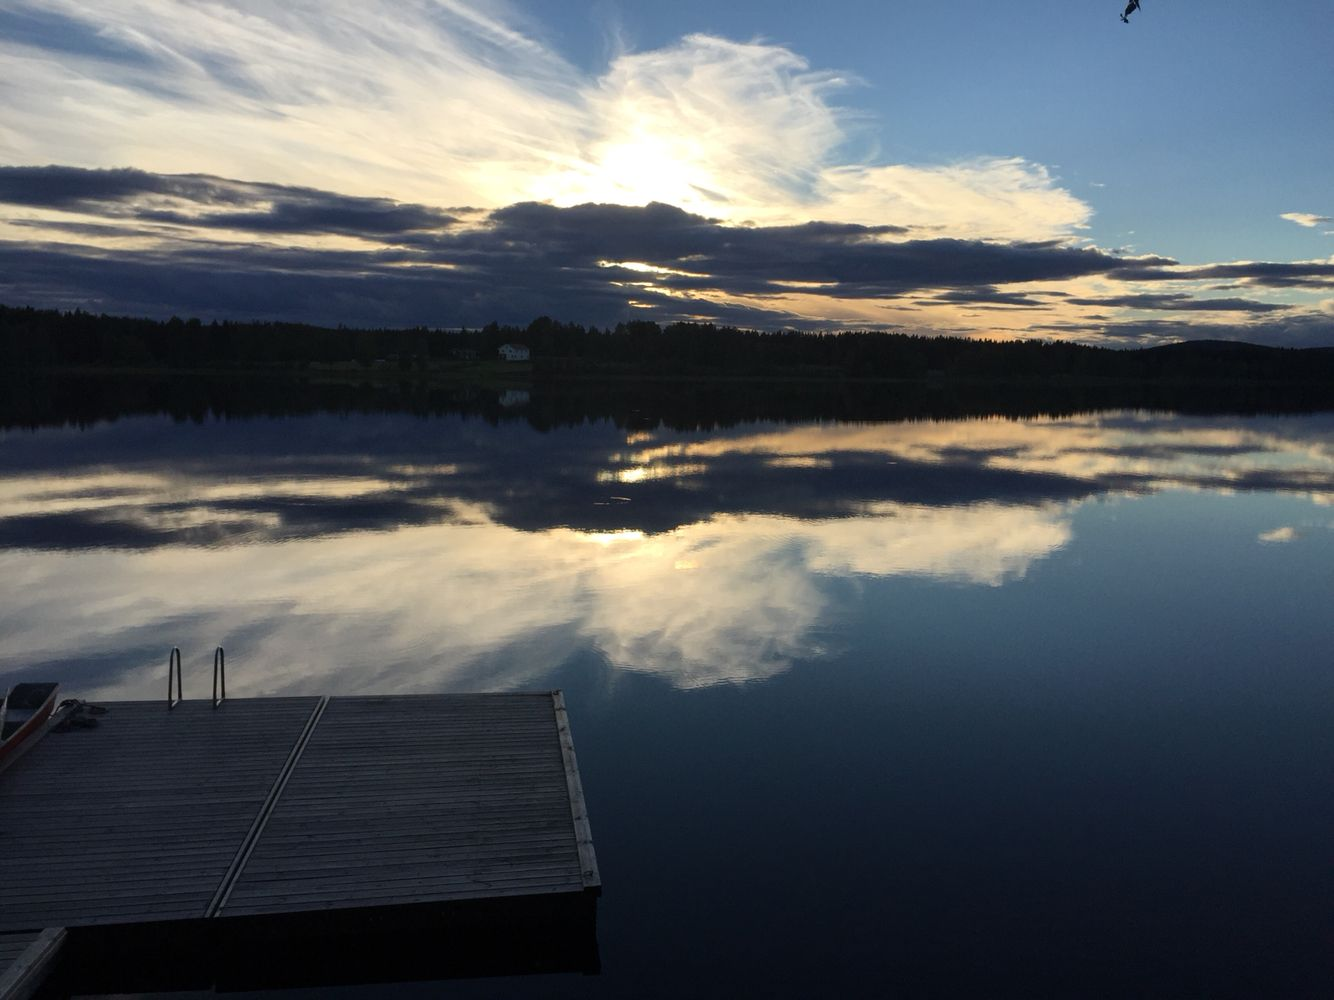 View from My Lake house in the middle of Sweden